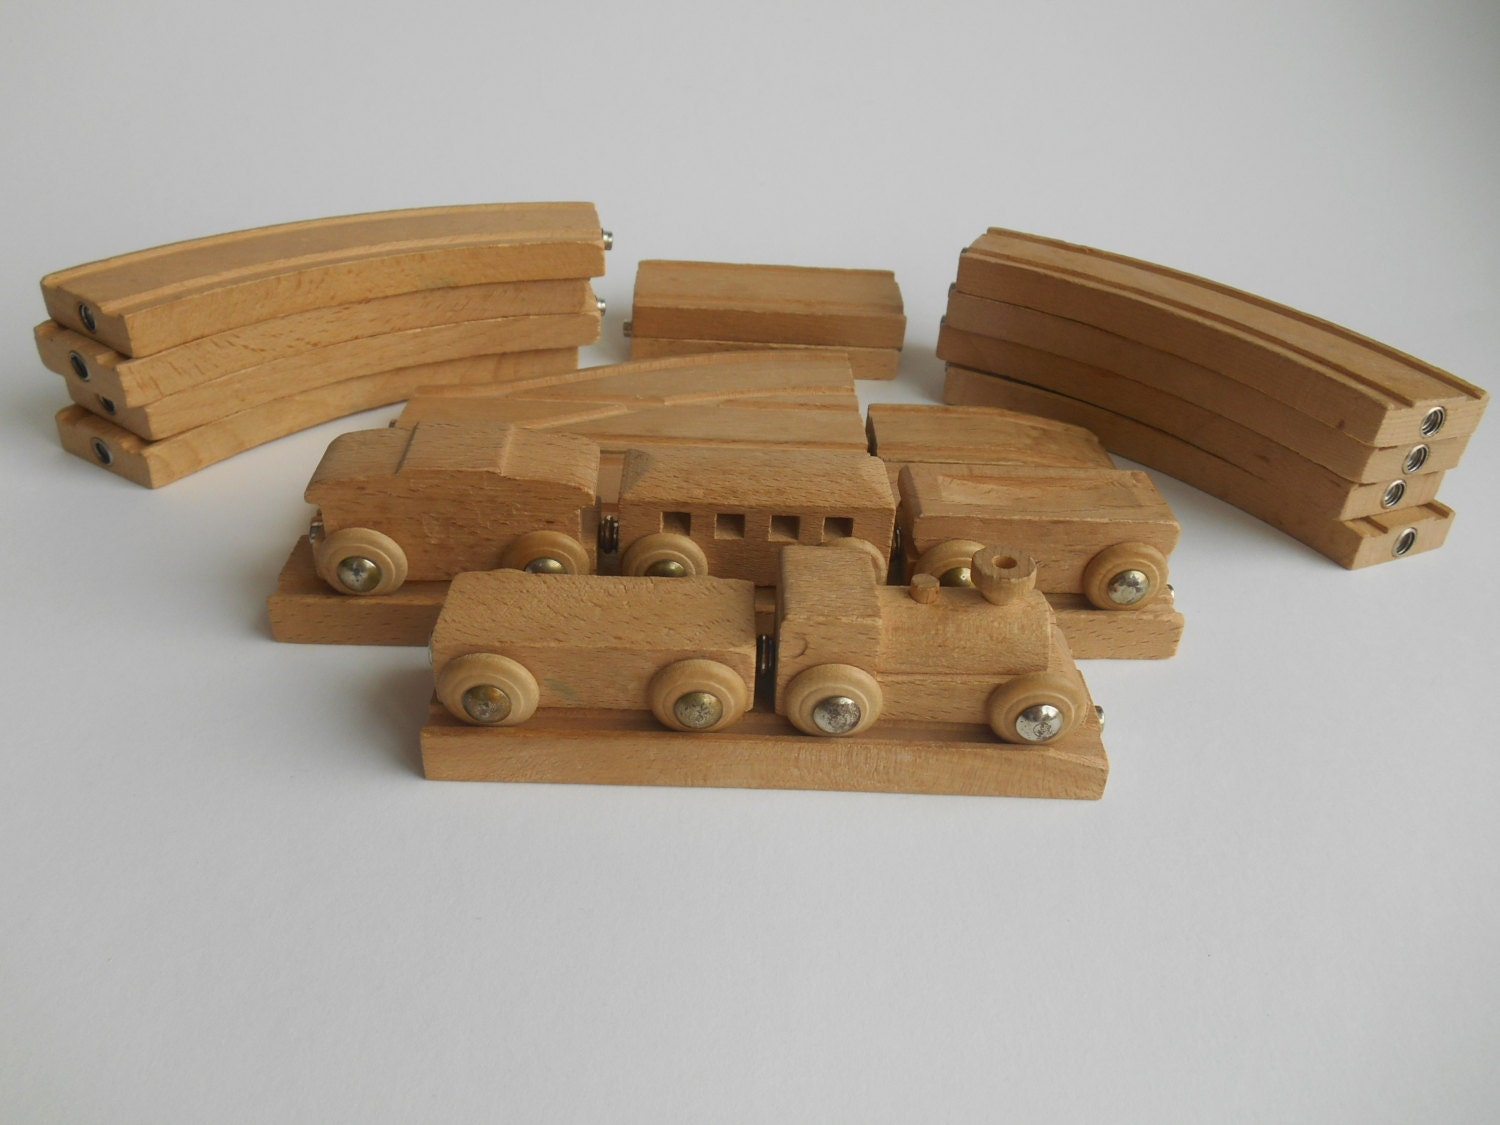 Vintage Wooden Train set by MidwoodVintage on Etsy